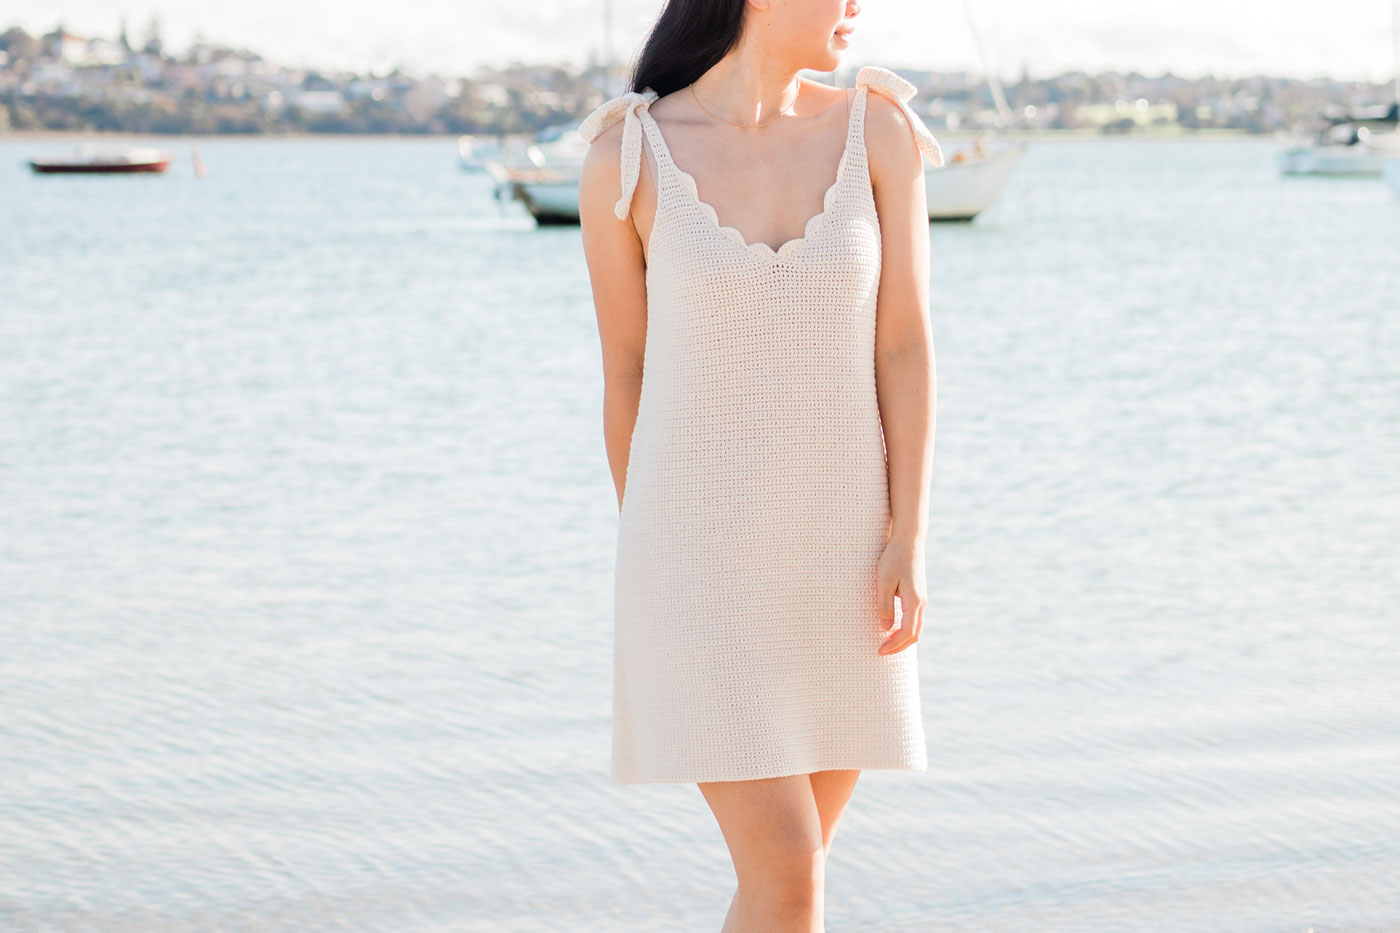 v neck summer crochet dress with scallop stitch edging and bow tie straps